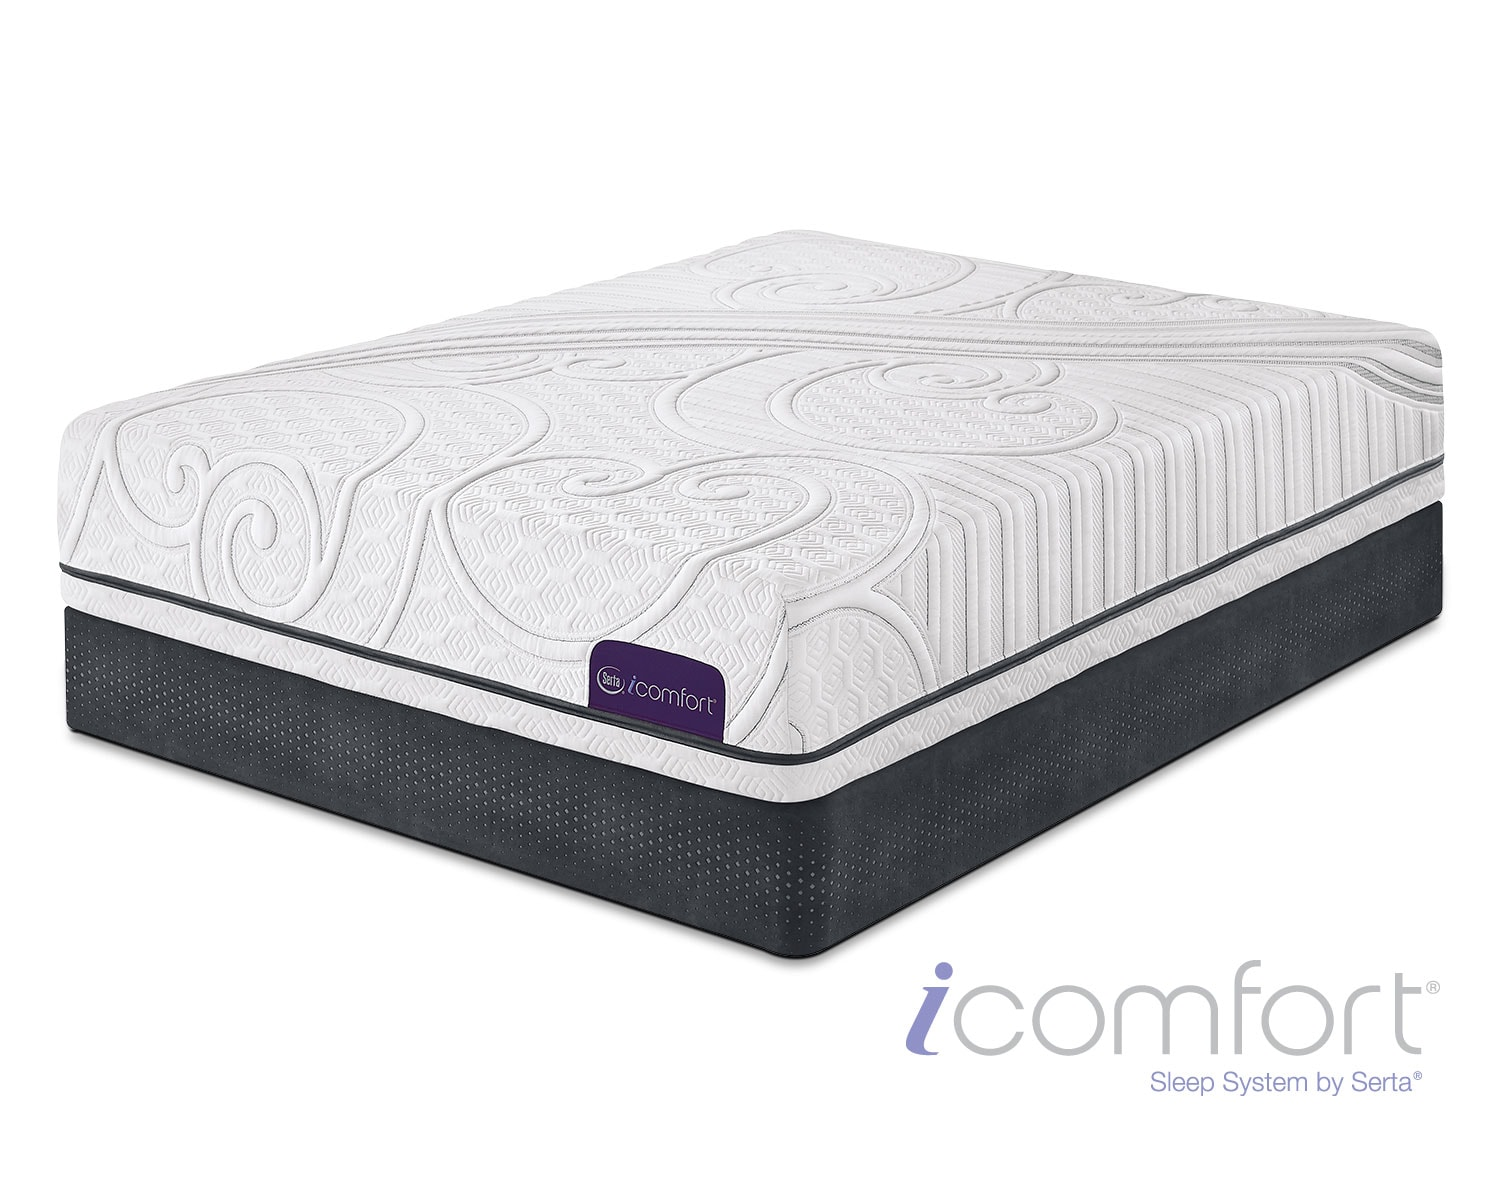 The iComfort Guidance Mattress Collection